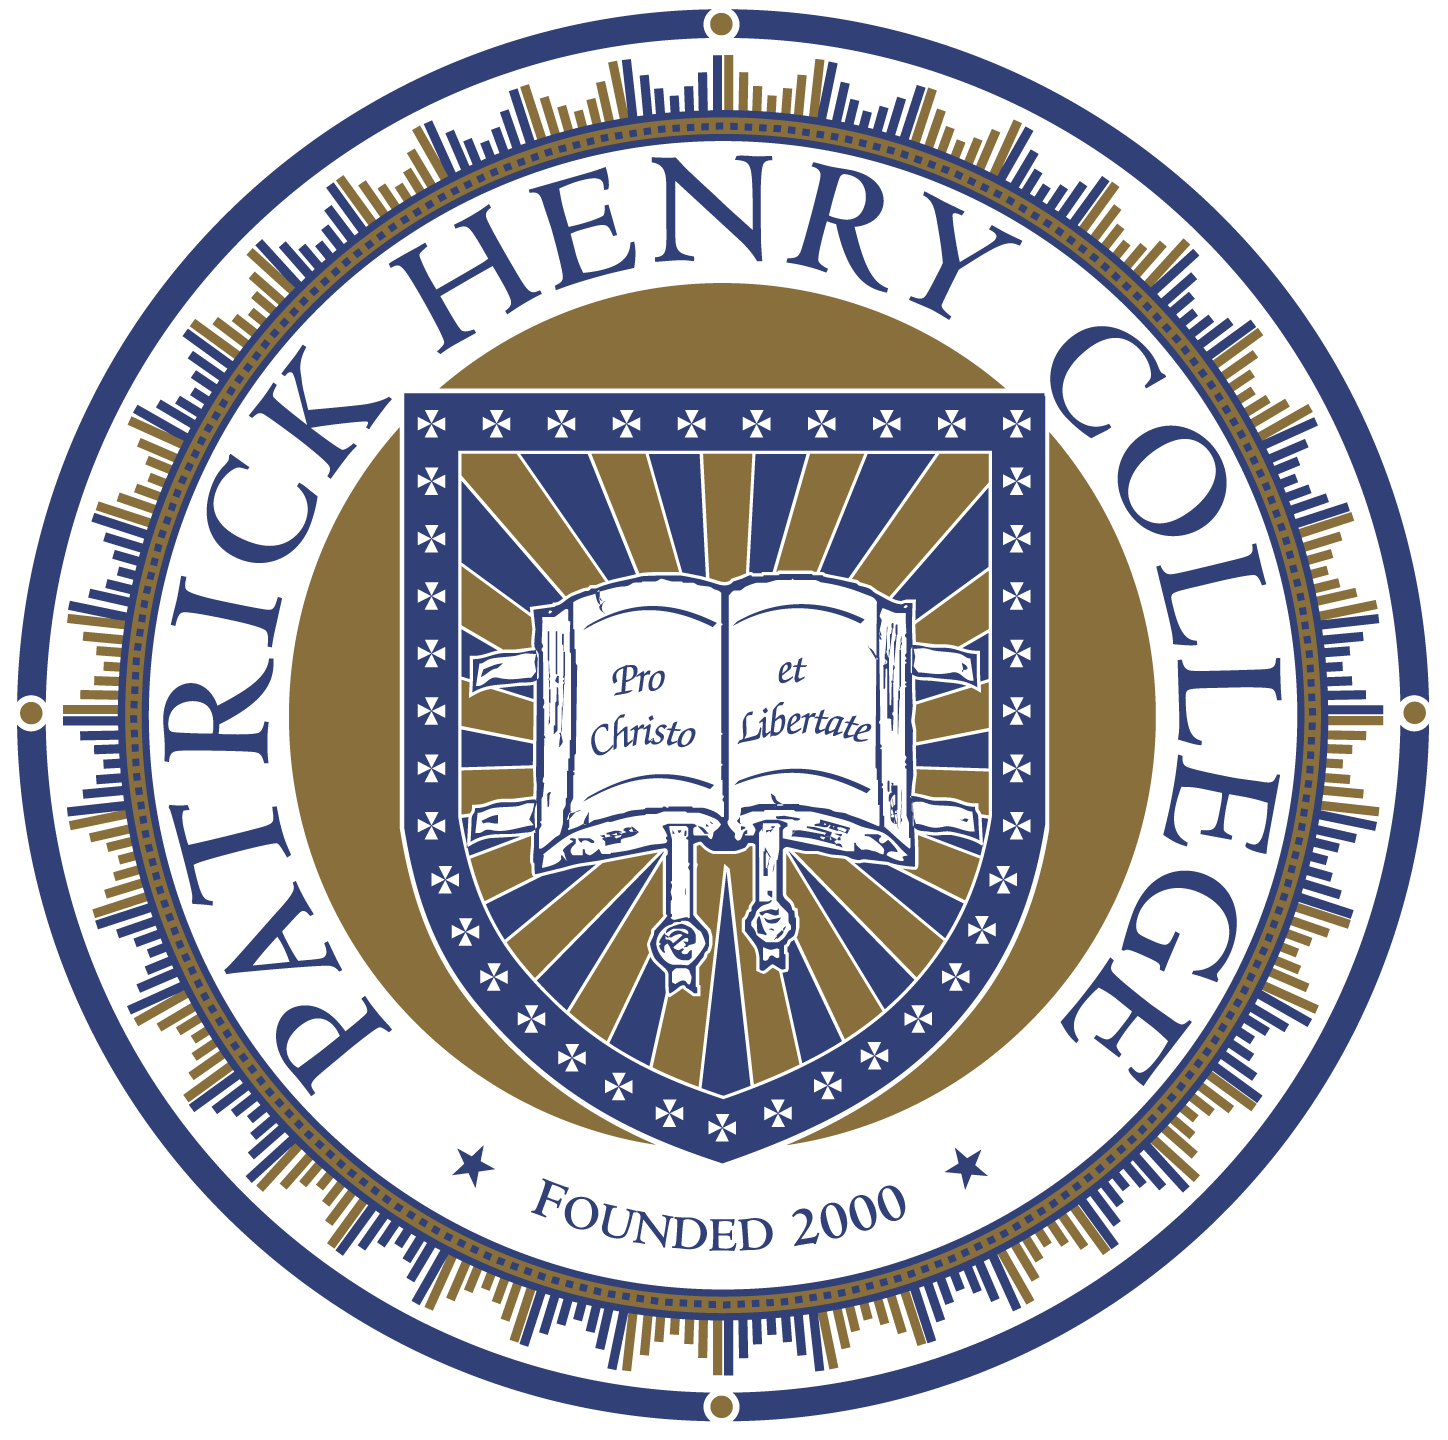 Patrick Henry College Ranks Third in Collegiate Mock Trial Among the Nation's Top Colleges and Universities